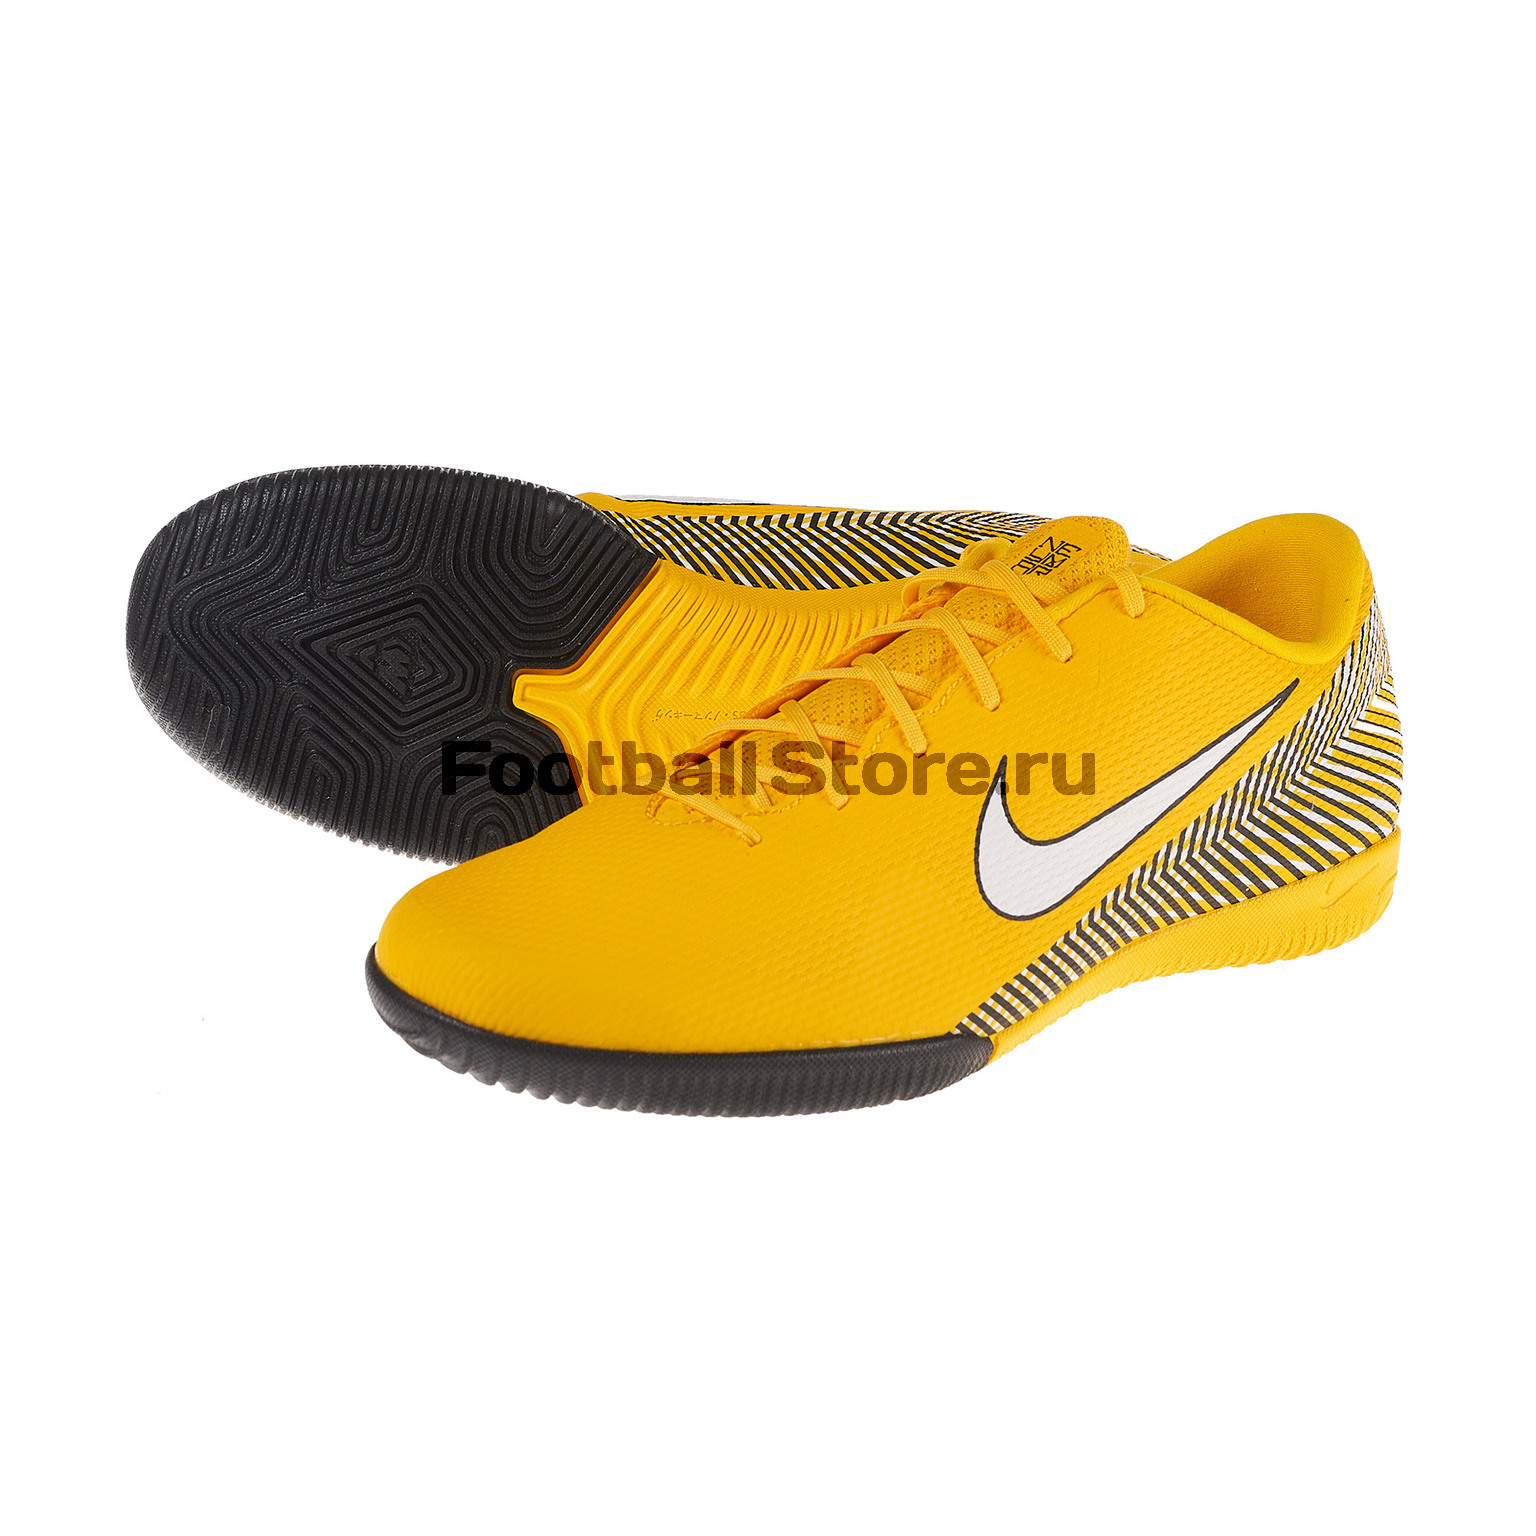 Обувь для зала Nike Vapor 12 Academy Neymar IC AO3122-710 спортинвентарь nike чехол для iphone 6 на руку nike vapor flash arm band 2 0 n rn 50 078 os